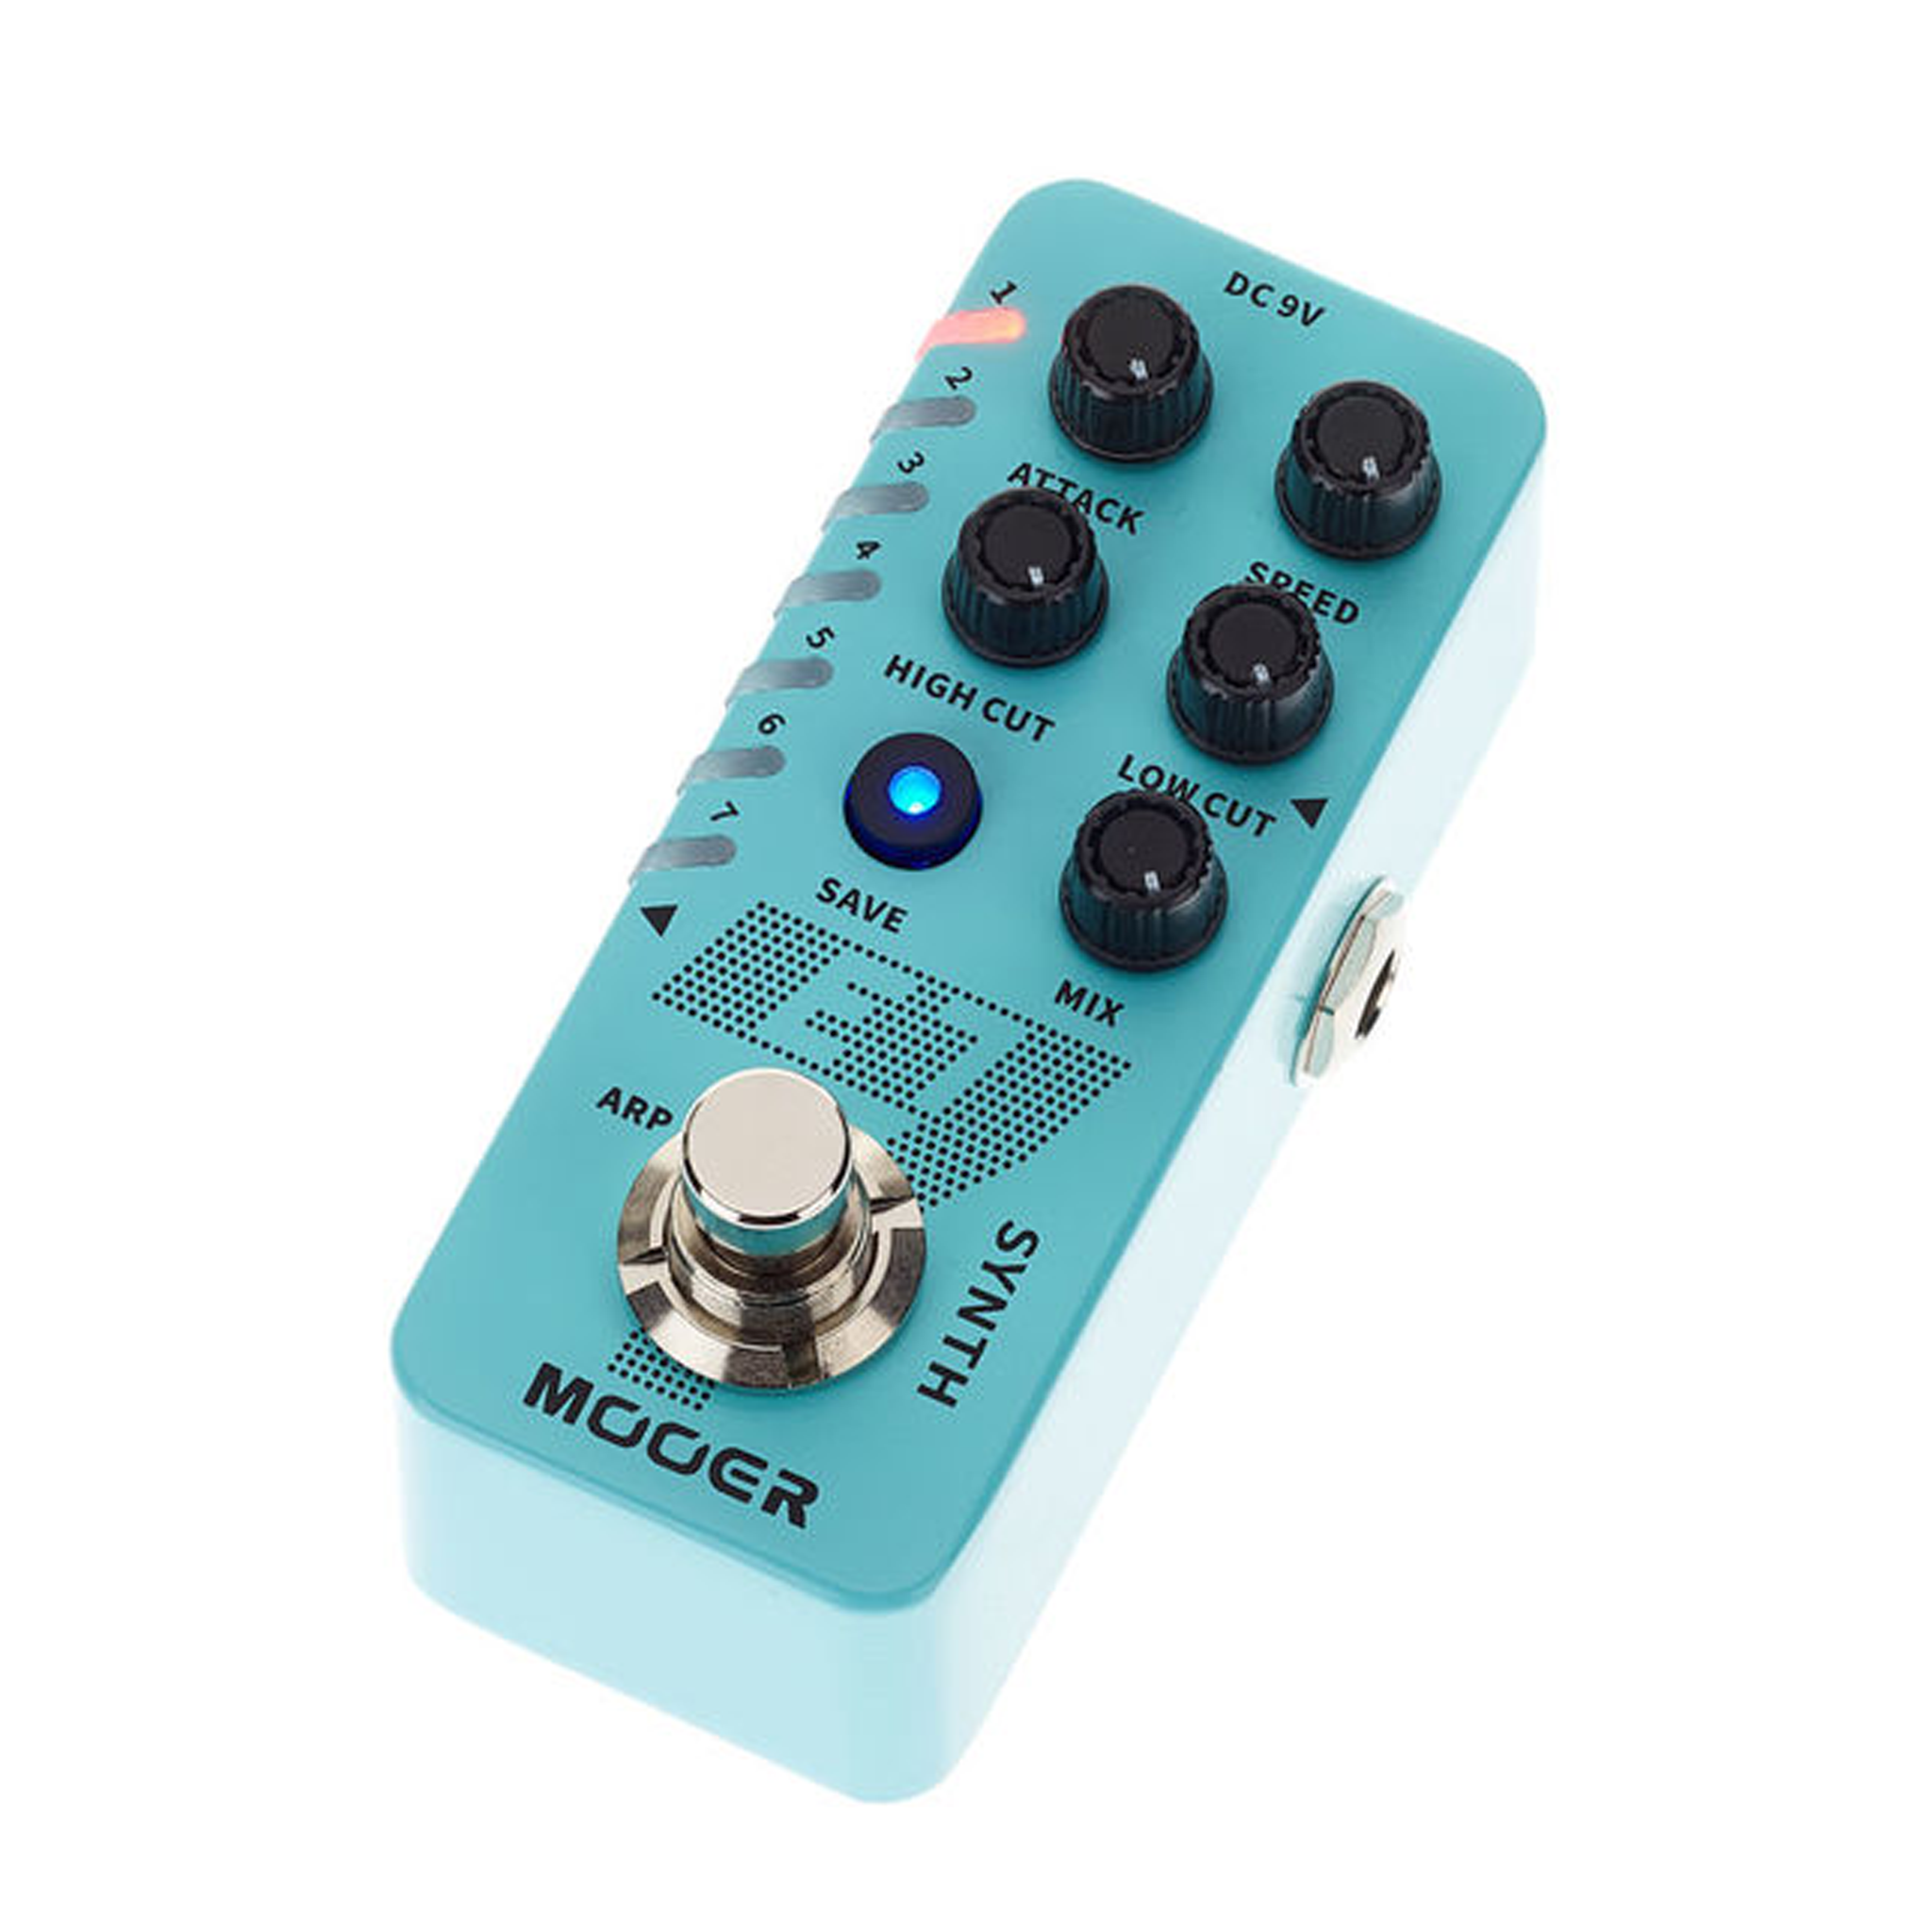 Mooer E7 Polyphonic Synth Effects Pedal